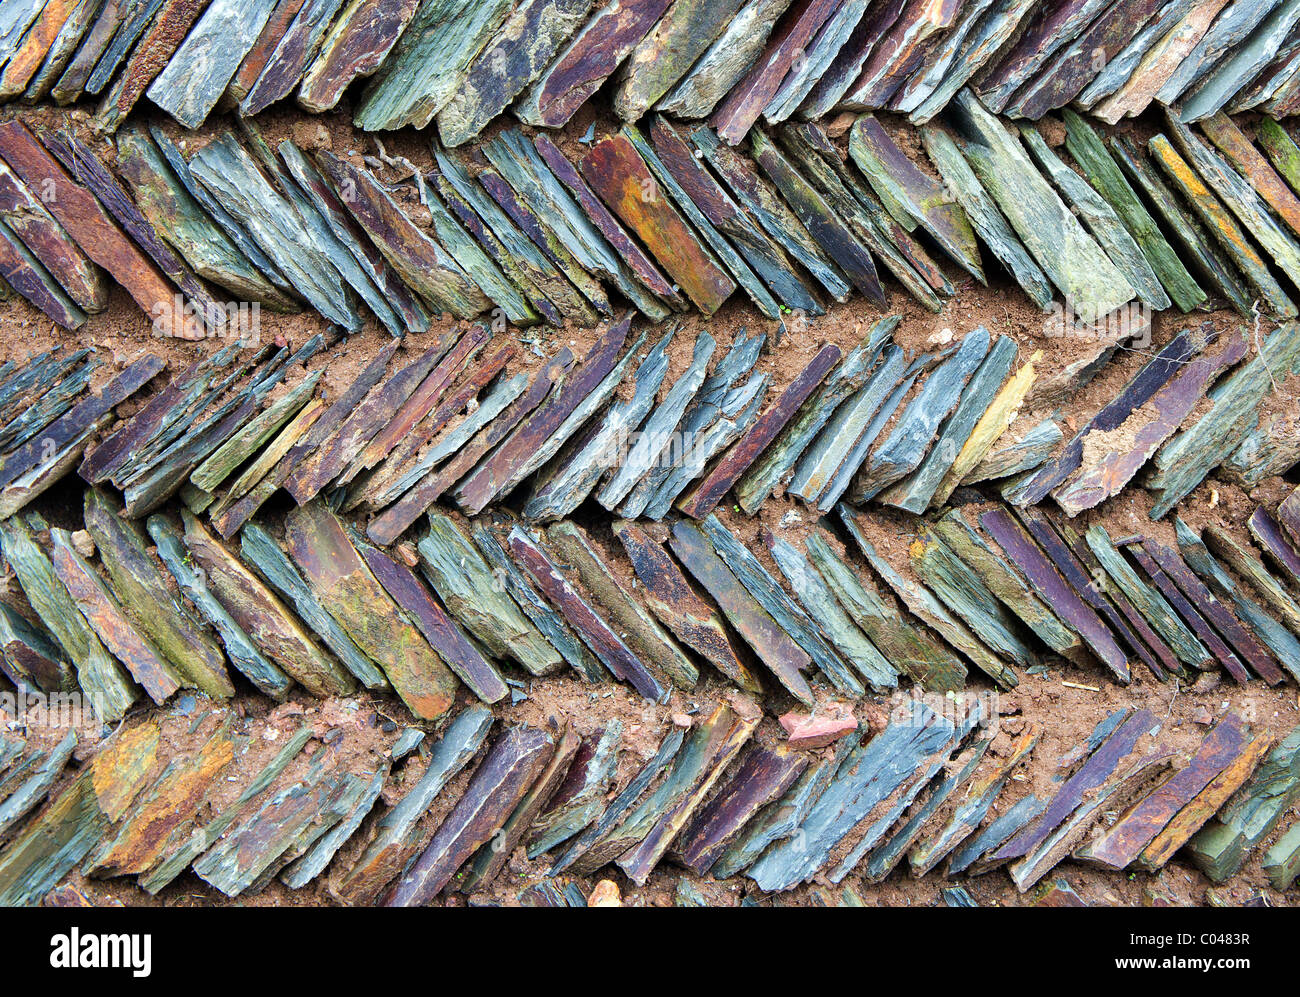 The detail and pattern in a herring bone design stone garden wall - Stock Image